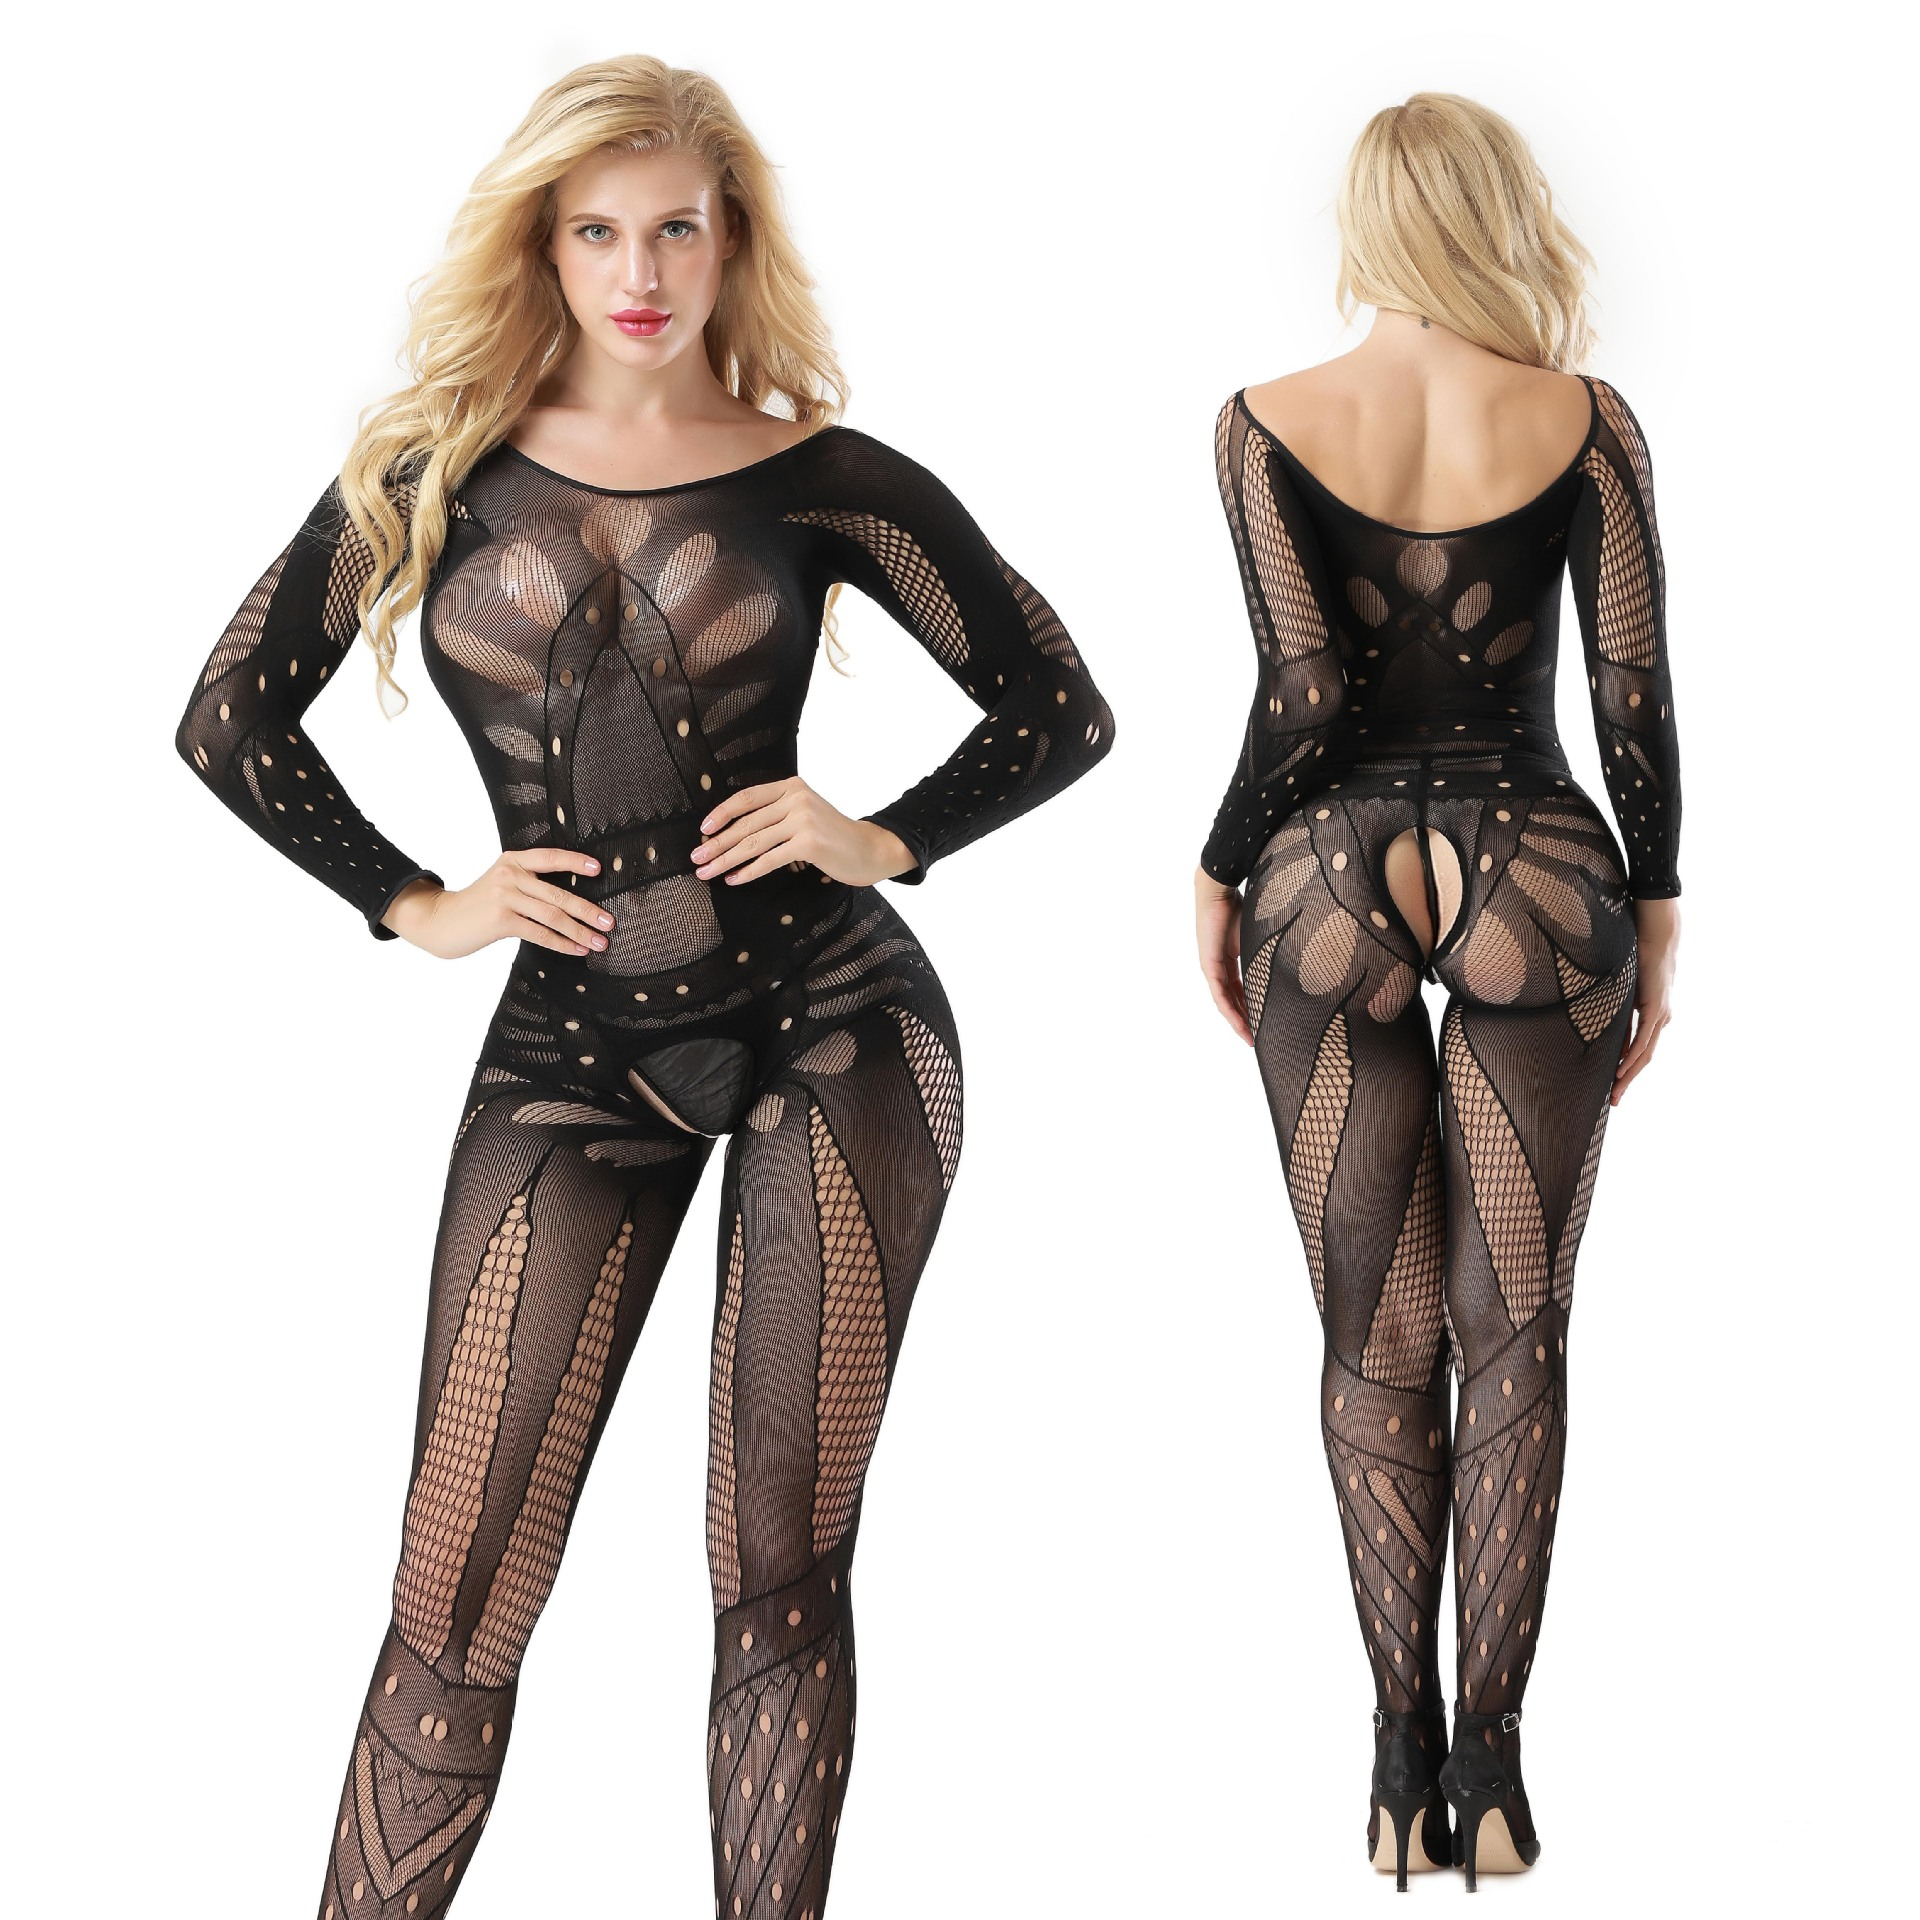 Long Sleeve Encryption Black Appeal Bodysuits Sexy Open Fork Stockings Cutout Hollow Fishnet Siamese Lingerie for Women(China)